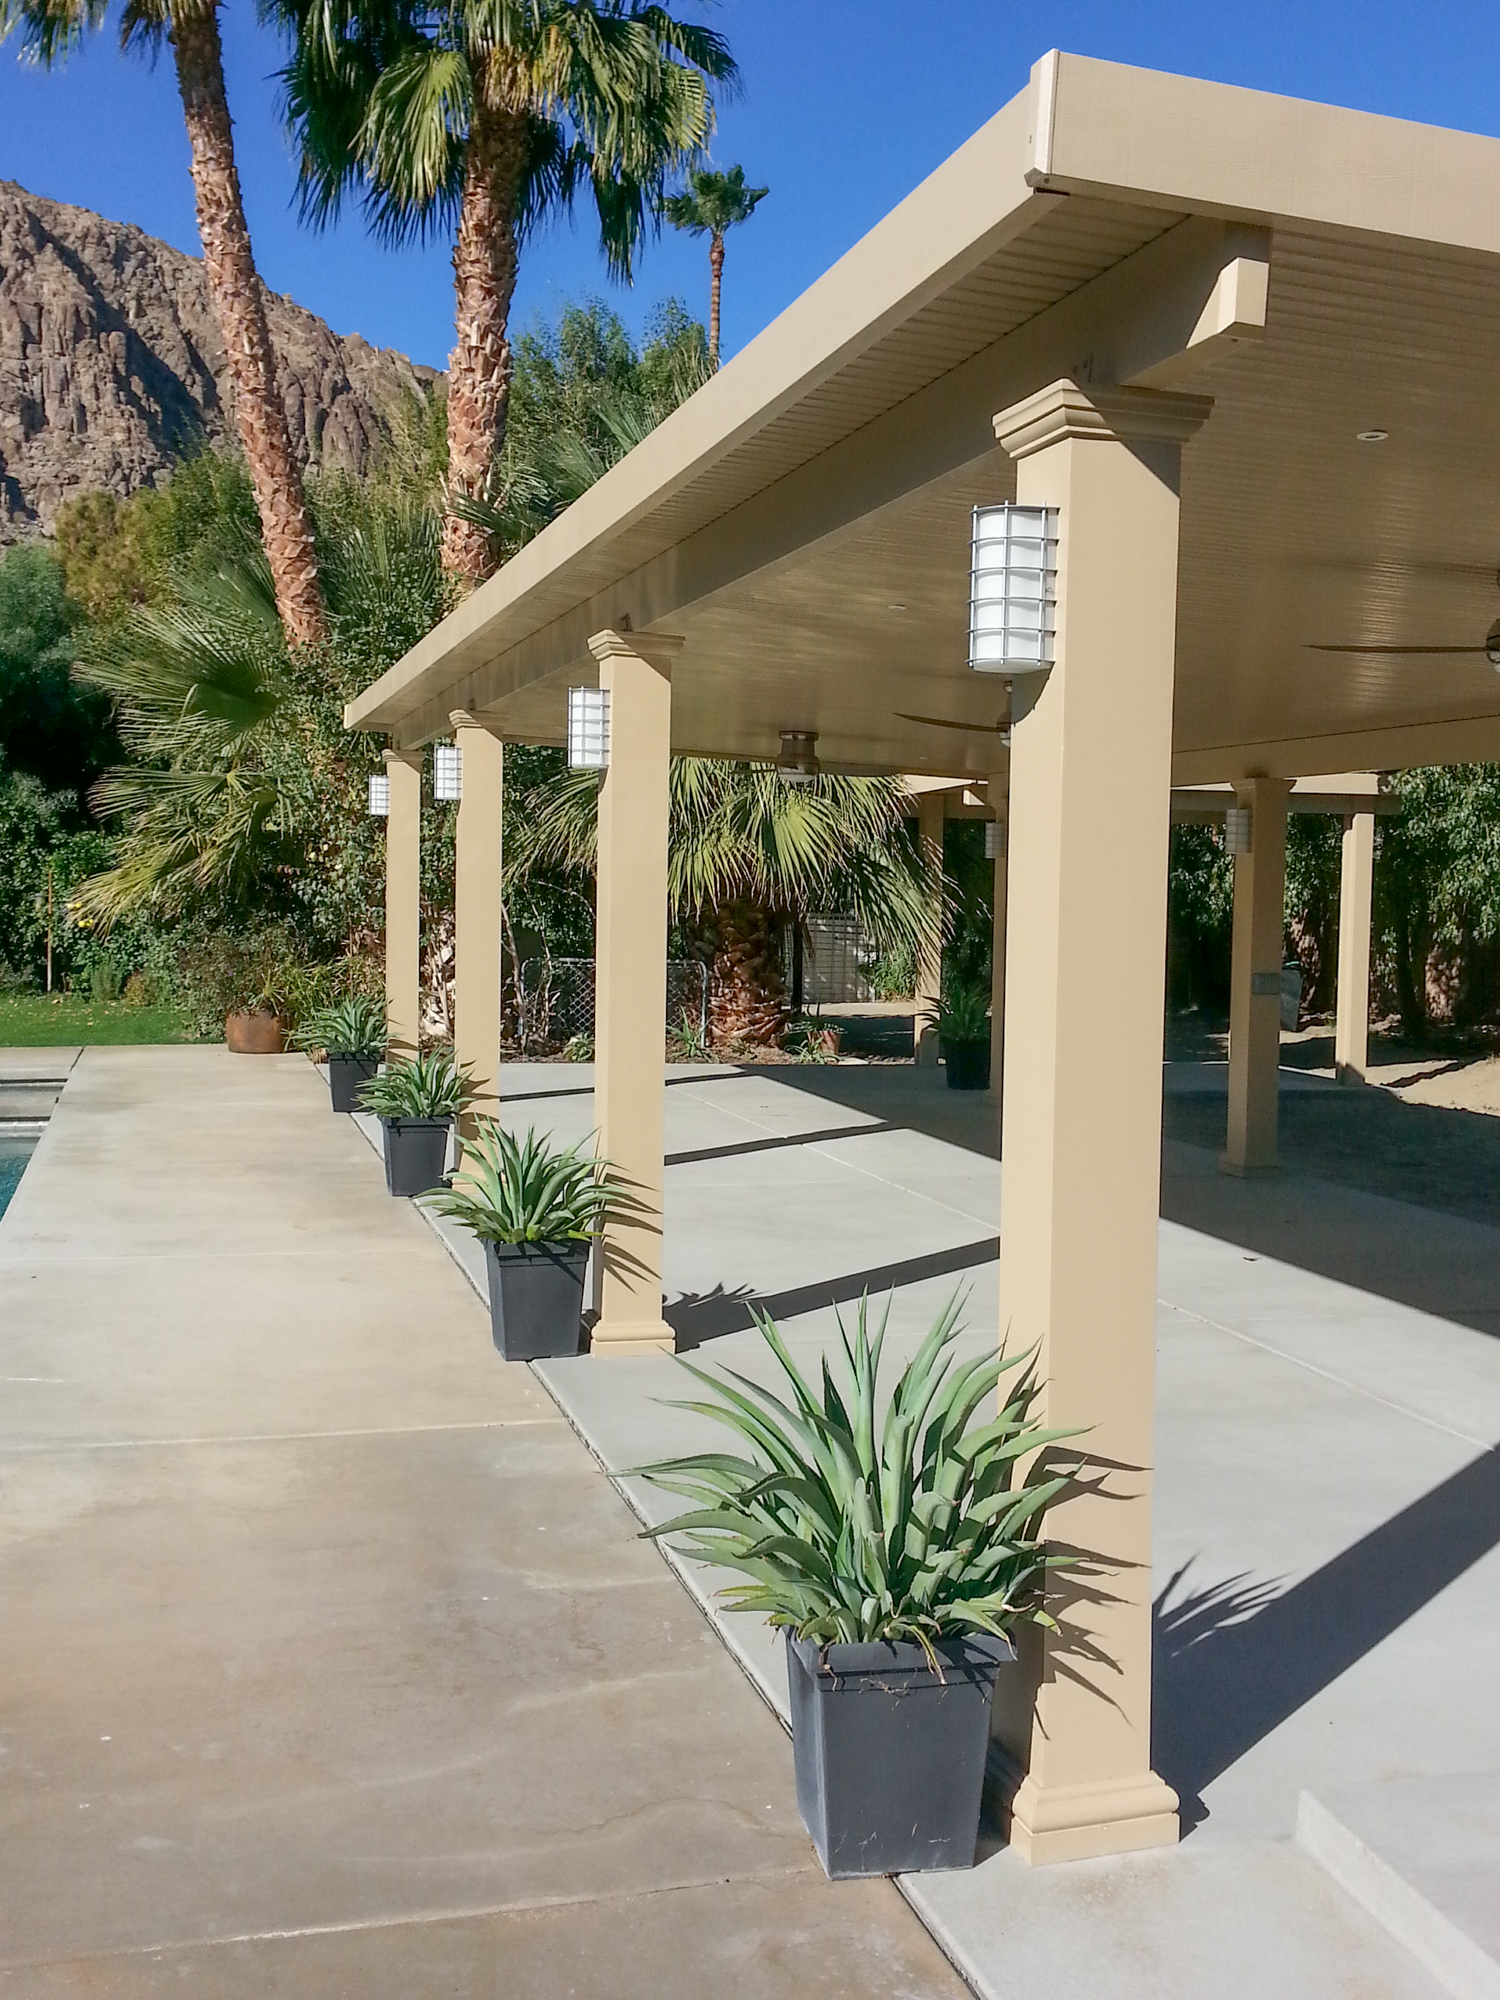 Patio Cover Designs| Patio Ideas | Valley Patios | Palm ... on Backyard Patio Cover Ideas  id=64225